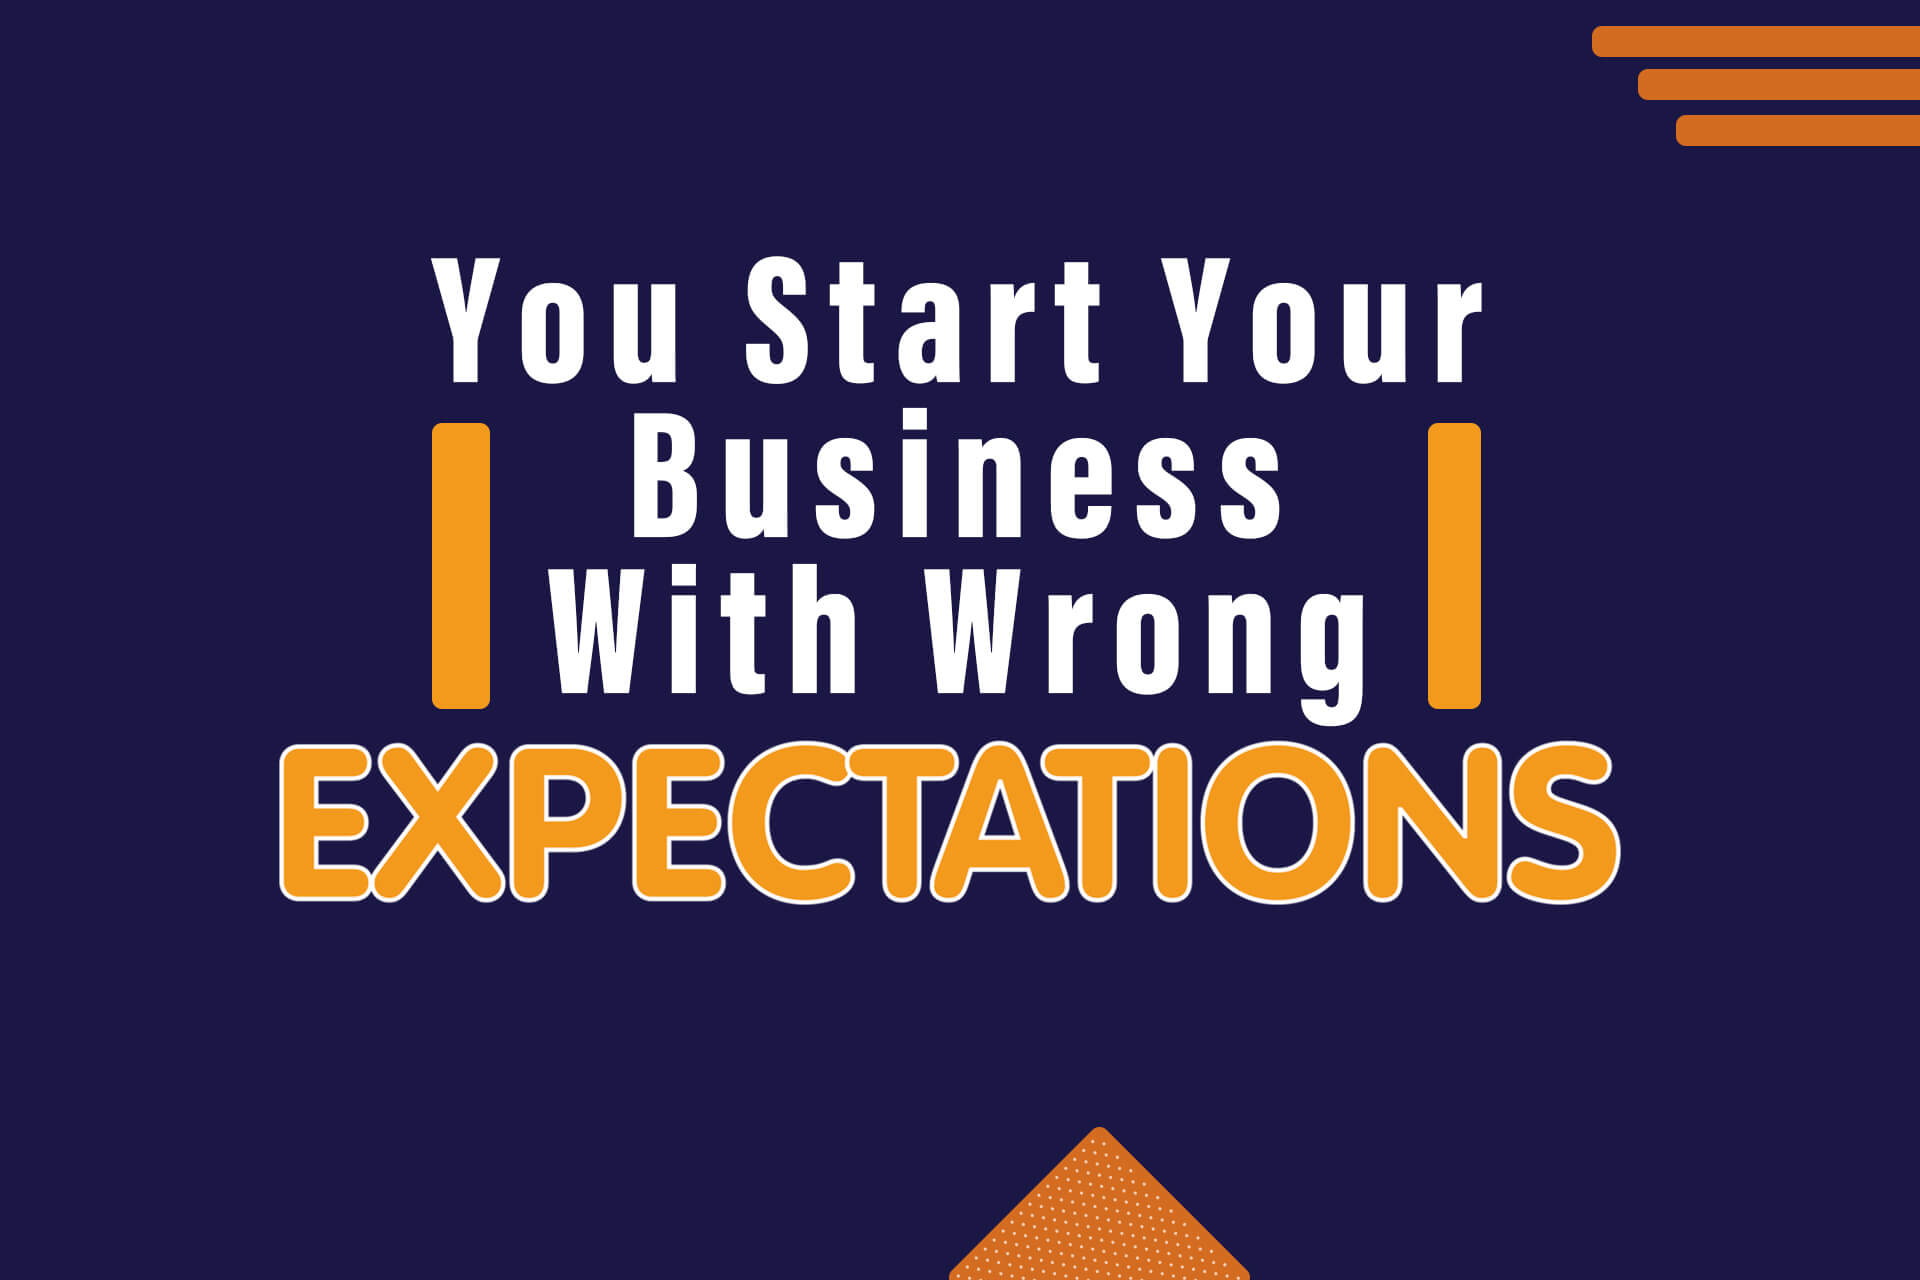 You Start Your Business With Wrong Expectations